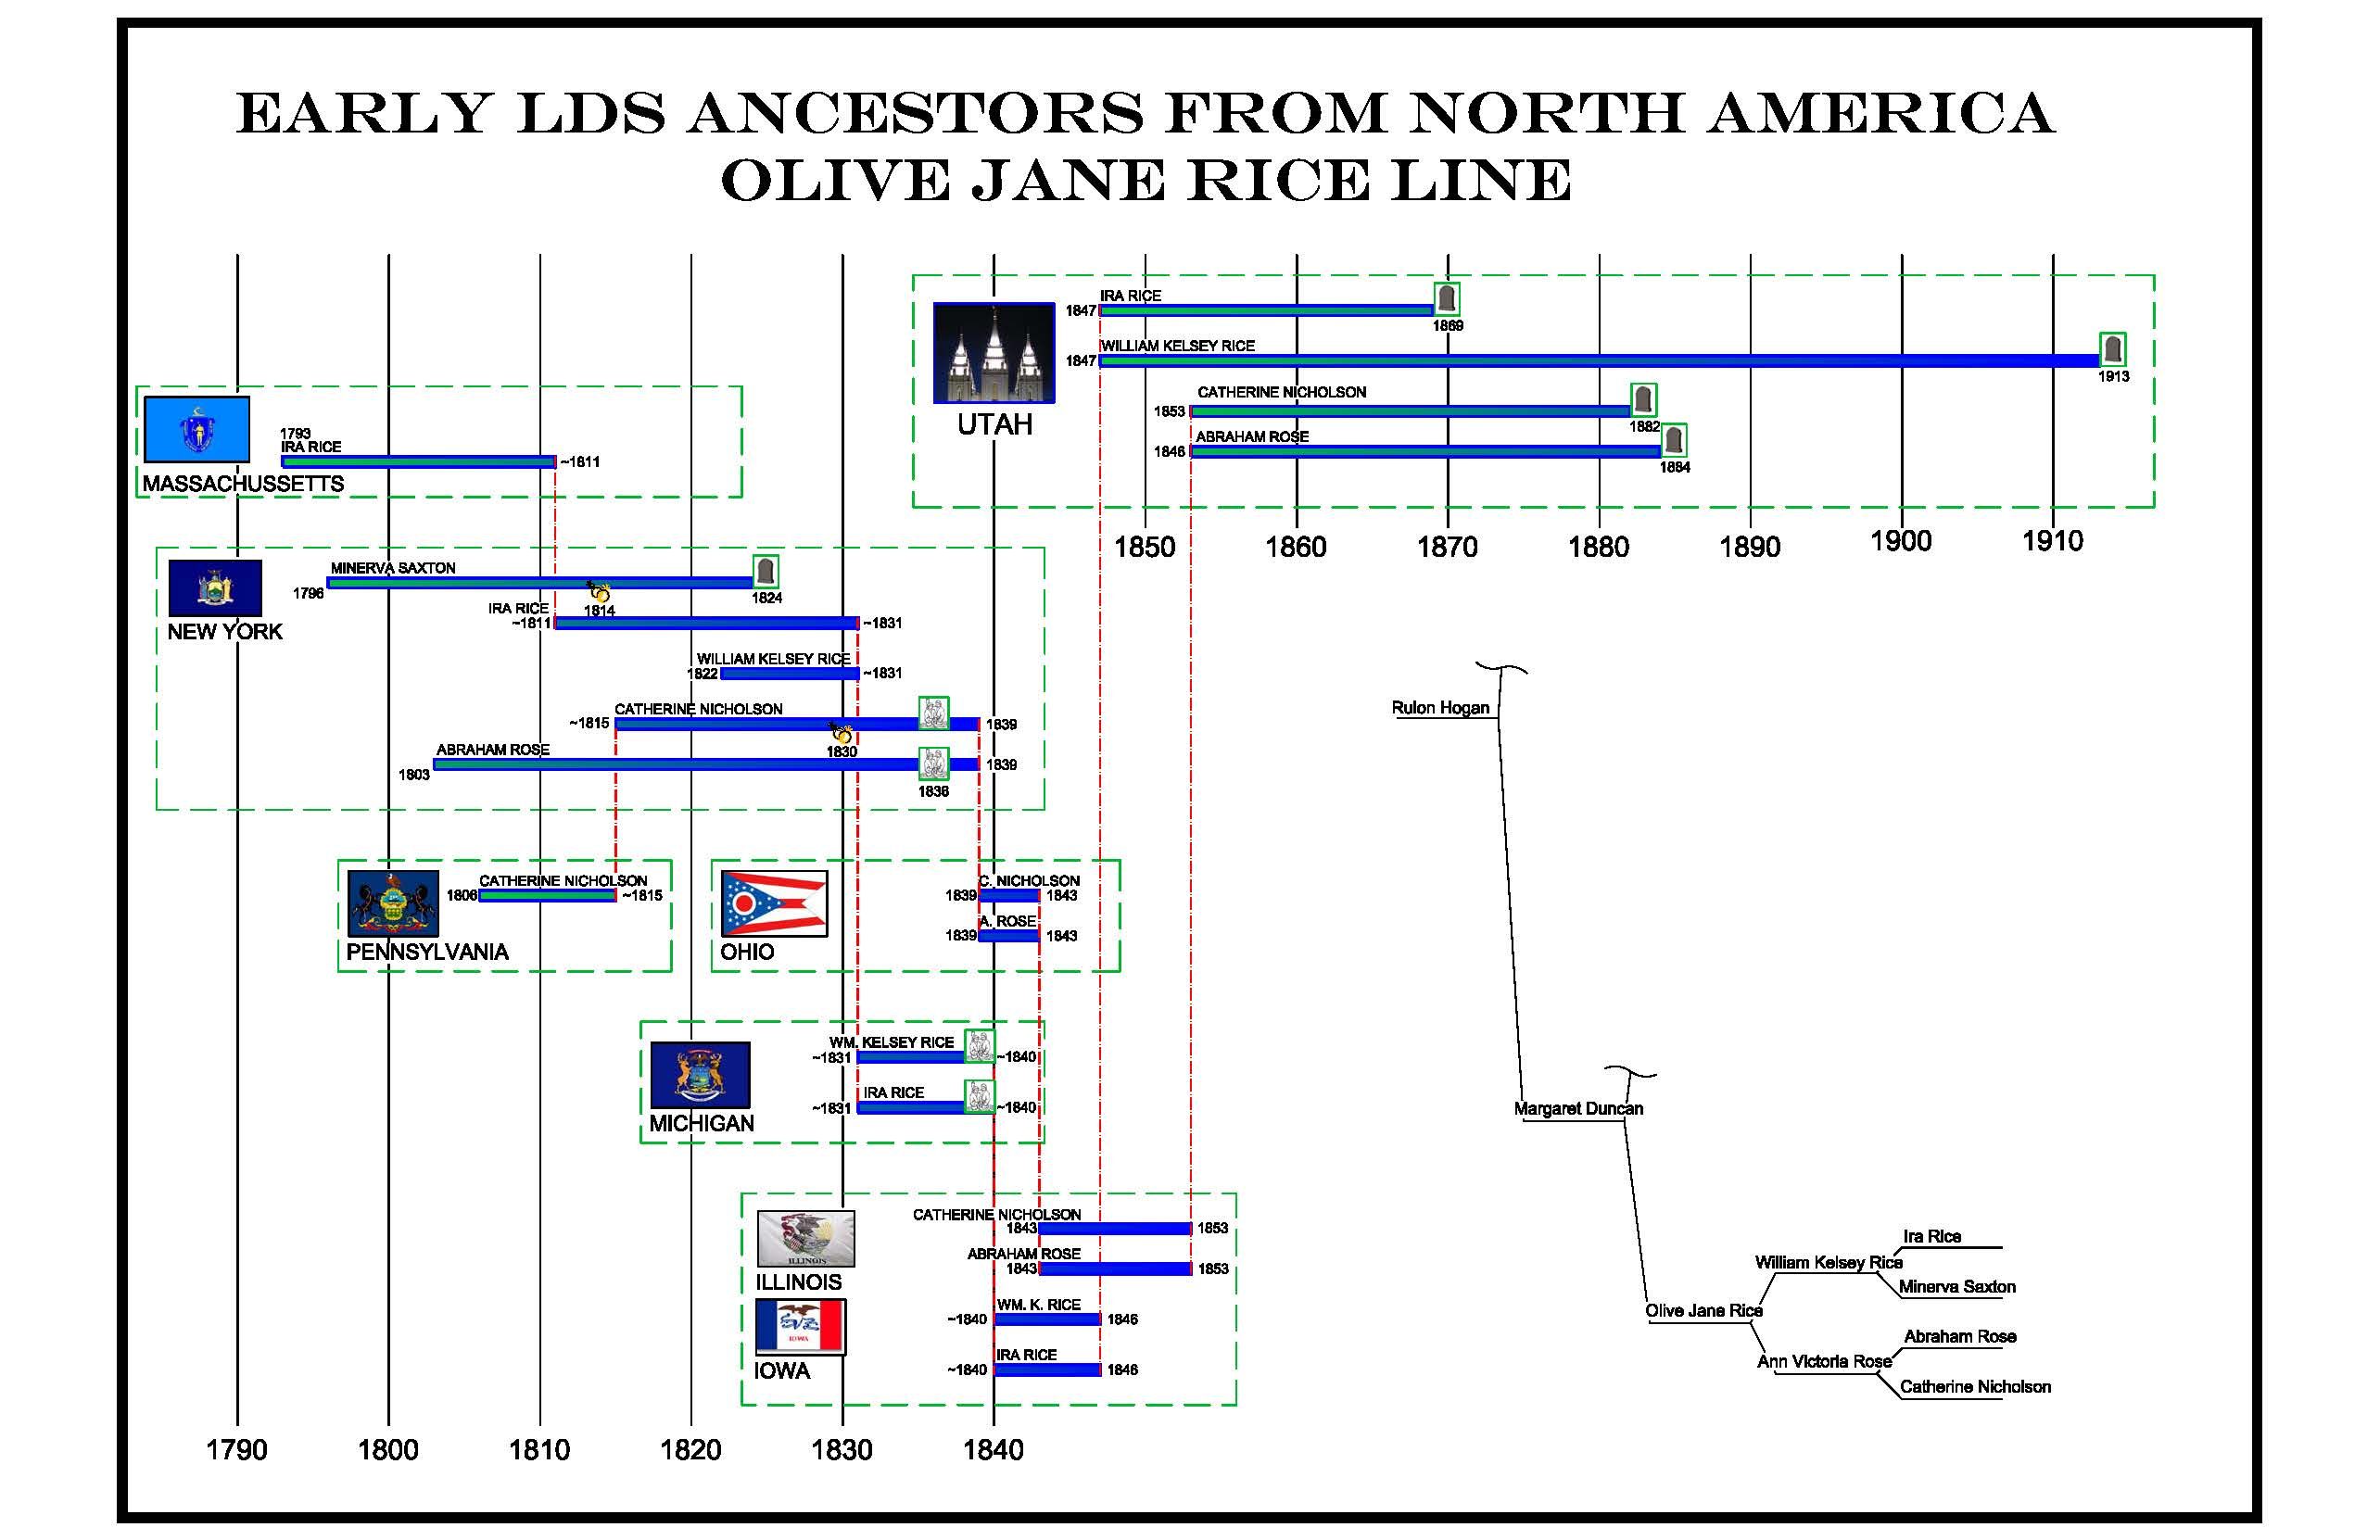 Timeline of Early LDS Ancestors from North America - Olive Jane Rice Line